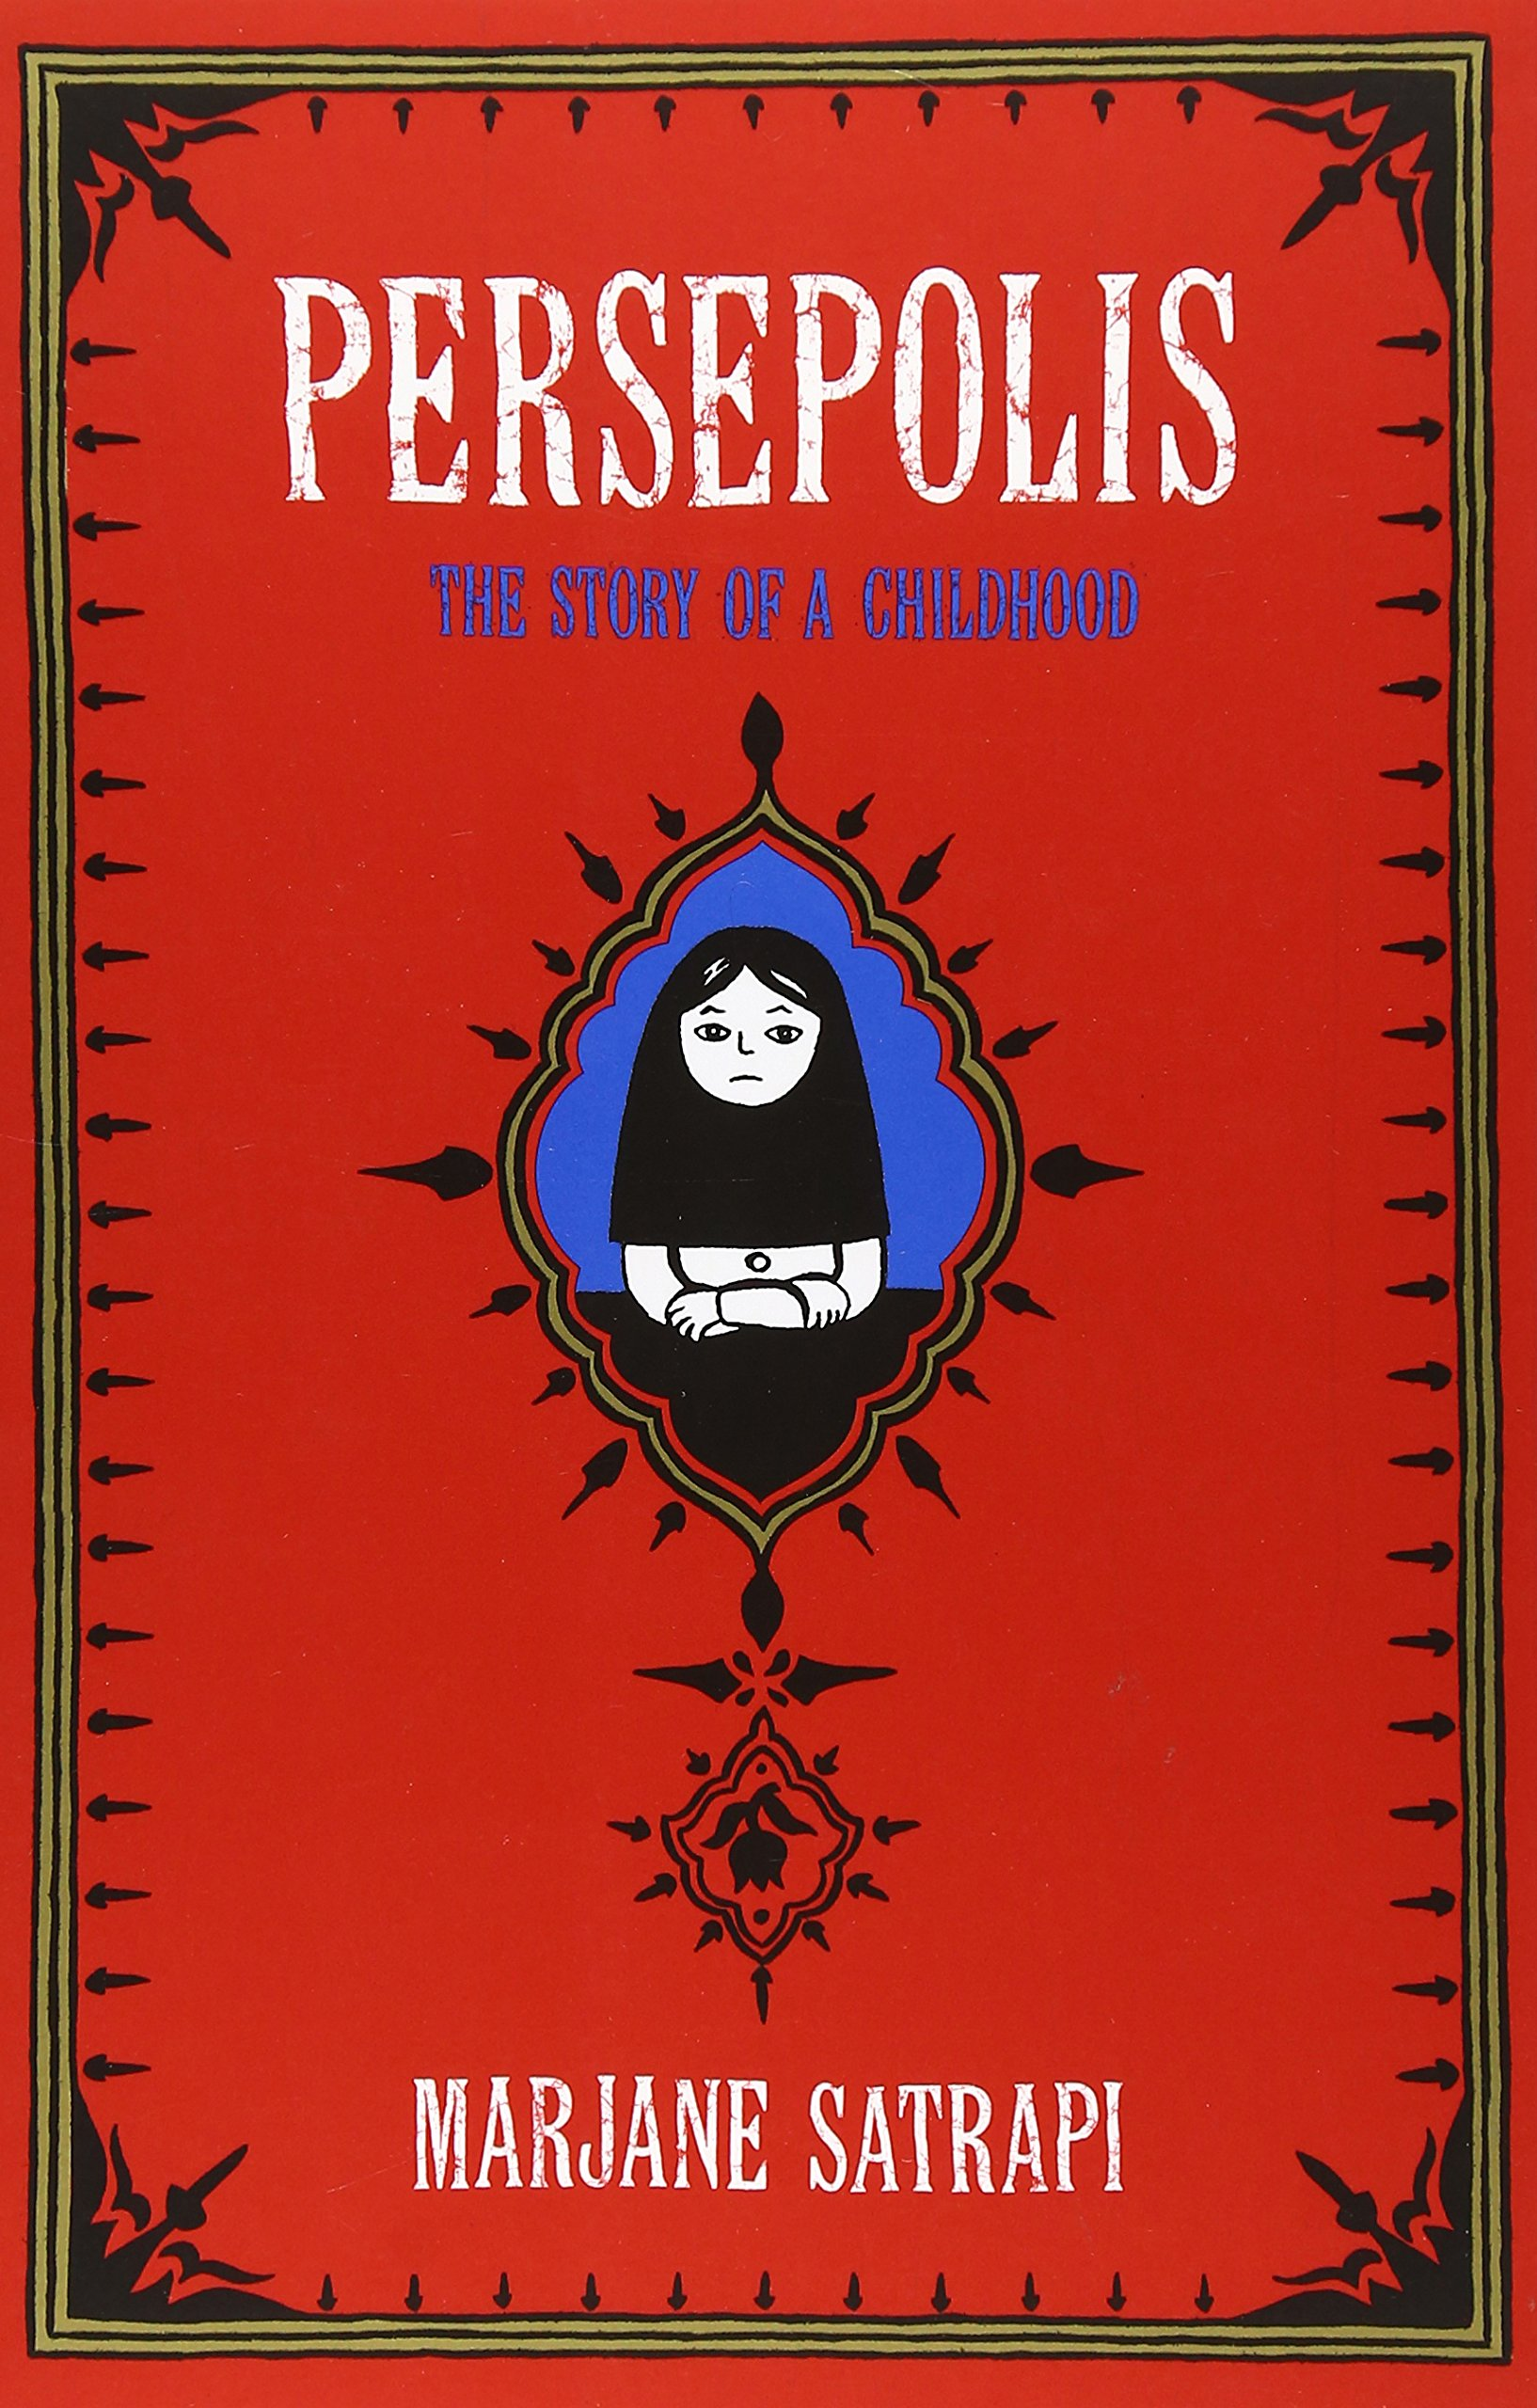 persepolis the story of a childhood pantheon graphic novels persepolis the story of a childhood pantheon graphic novels marjane satrapi 8601419944736 com books